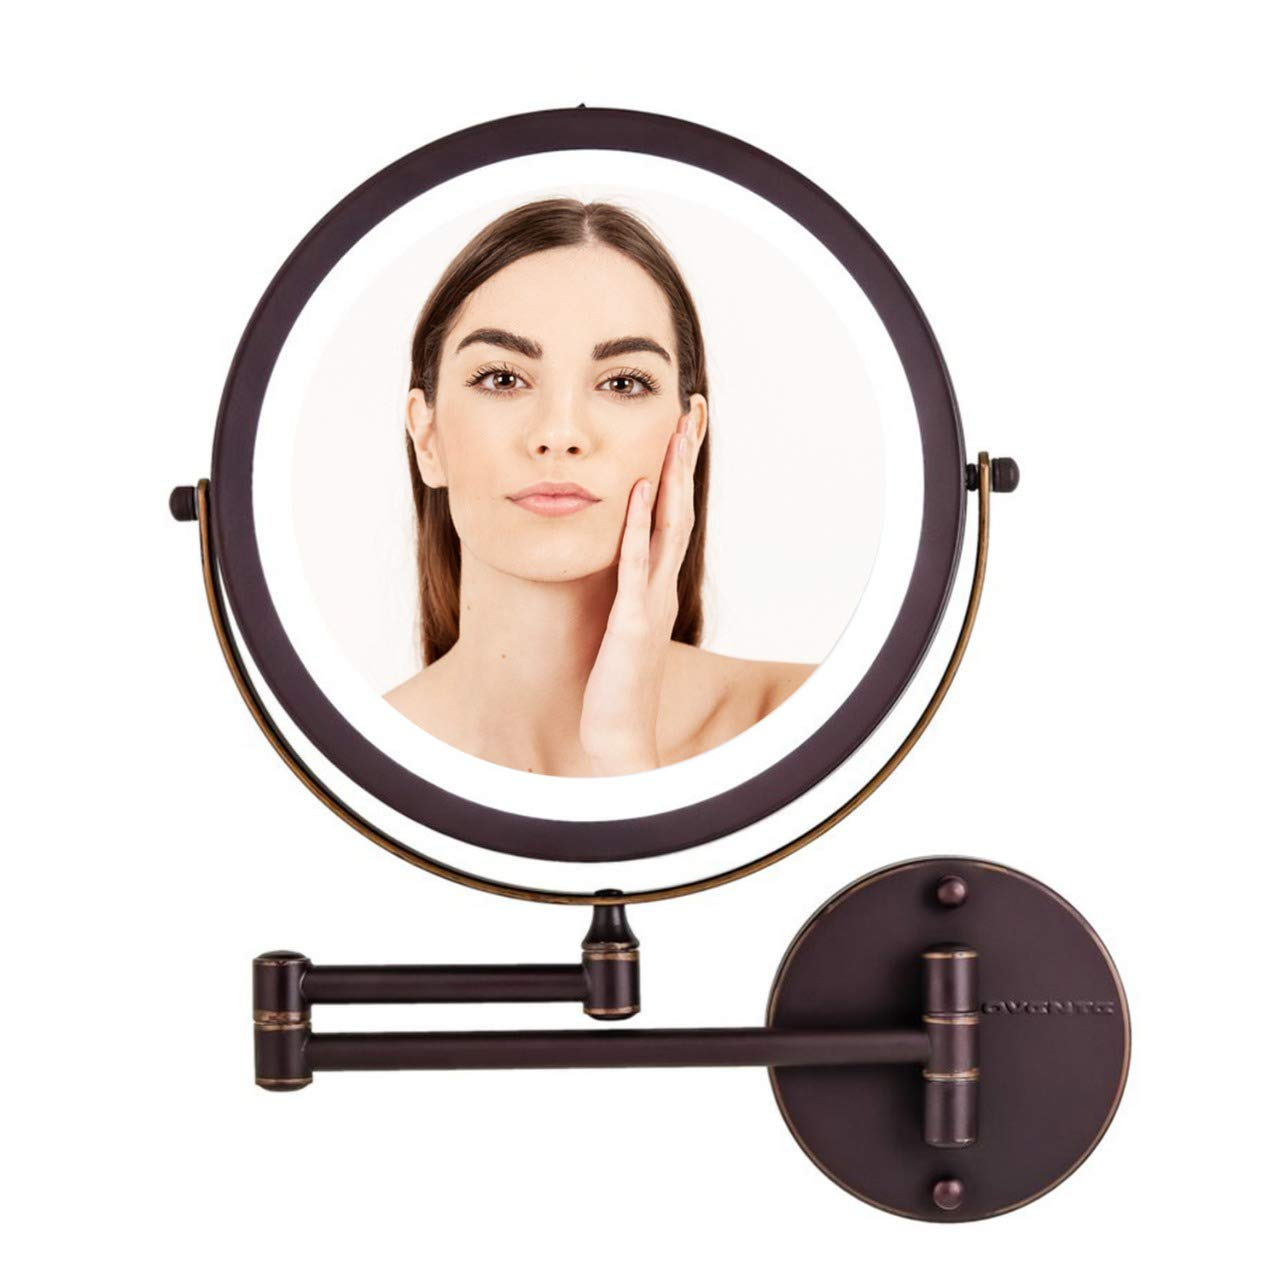 Ovente Wall Mount Mirror, 1×/10× Magnification, LED Ring Light, 8.5'', Battery-Operated (MFW85ABZ1X10X) by OVENTE